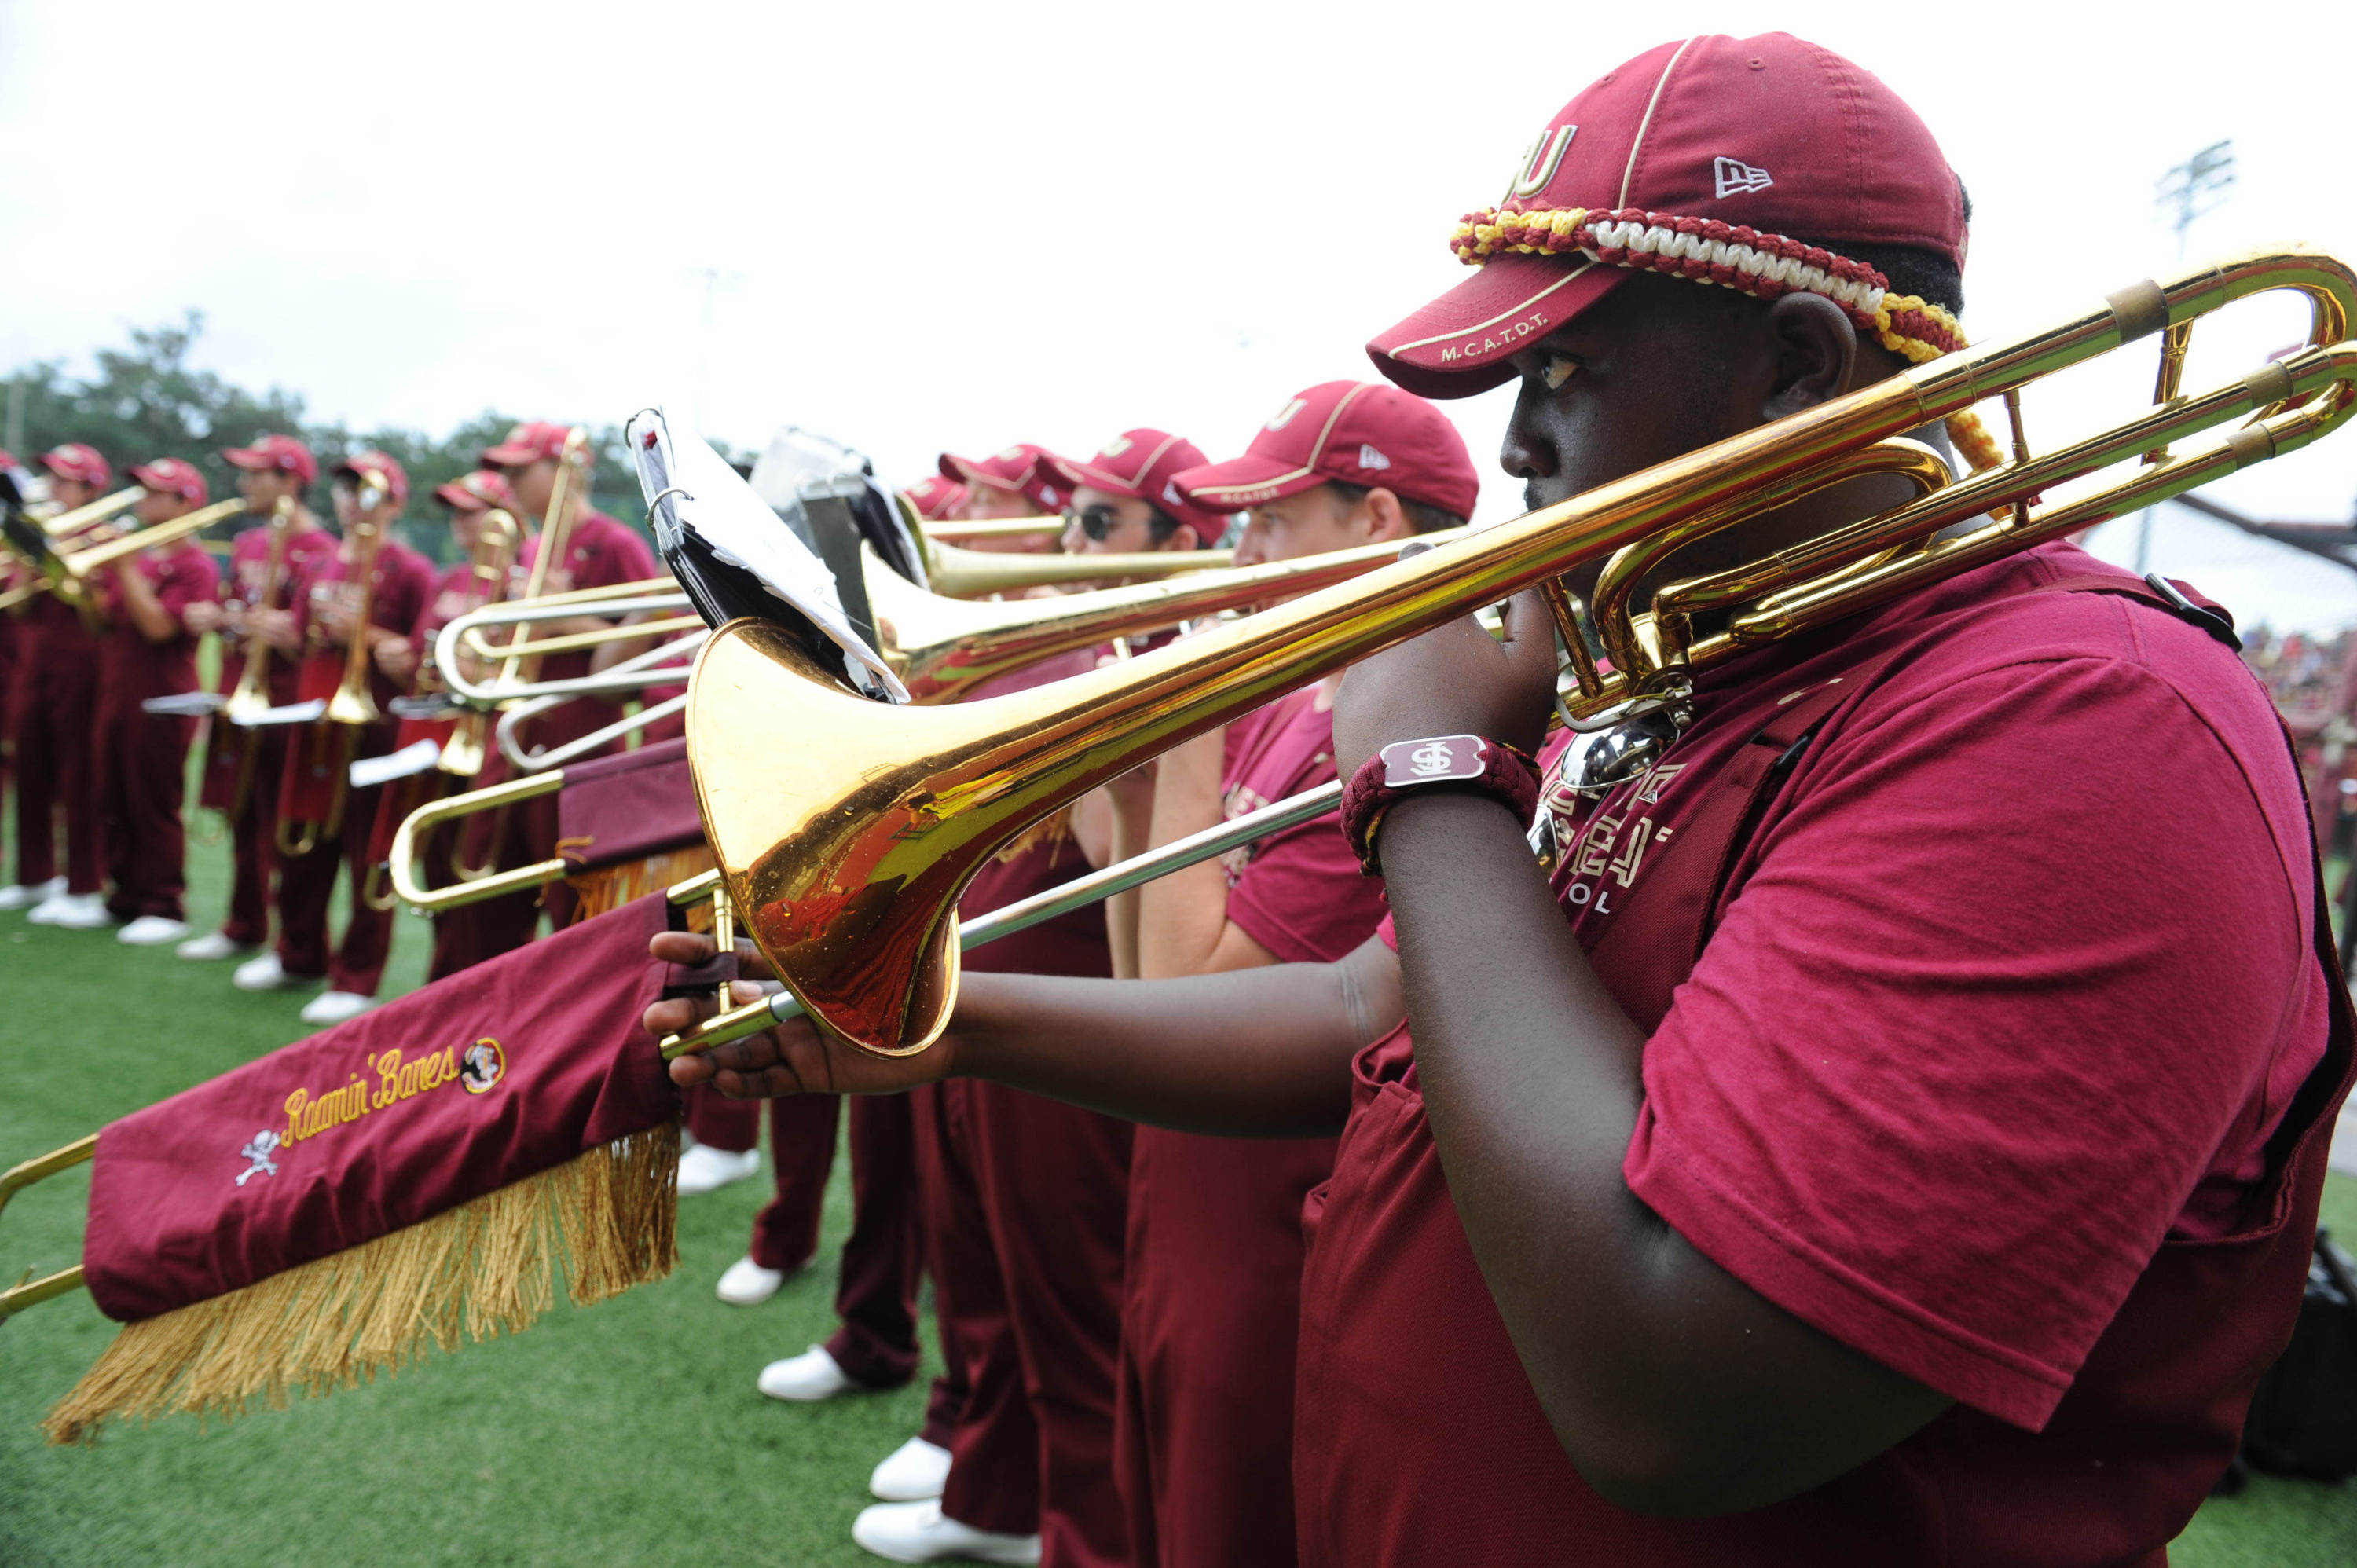 The Florida State Seminoles Marching Chiefs warm up before the start of the game against the Bethune-Cookman Wildcats. (Melina Vastola-USA TODAY Sports)